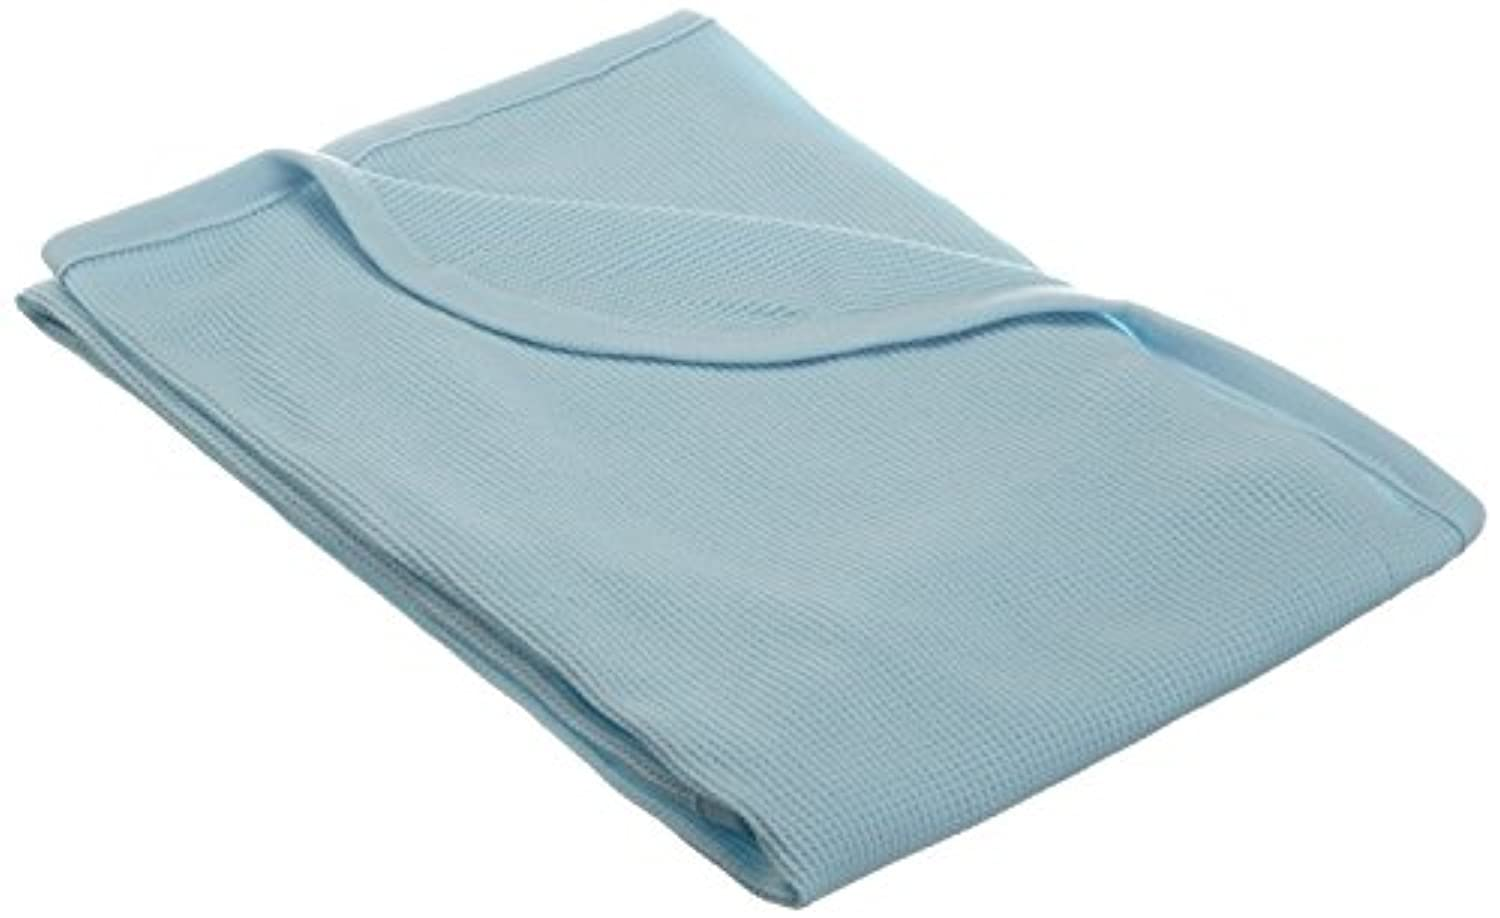 TL Care 100% Cotton Swaddle/Thermal Blanket, Blue by TL Care